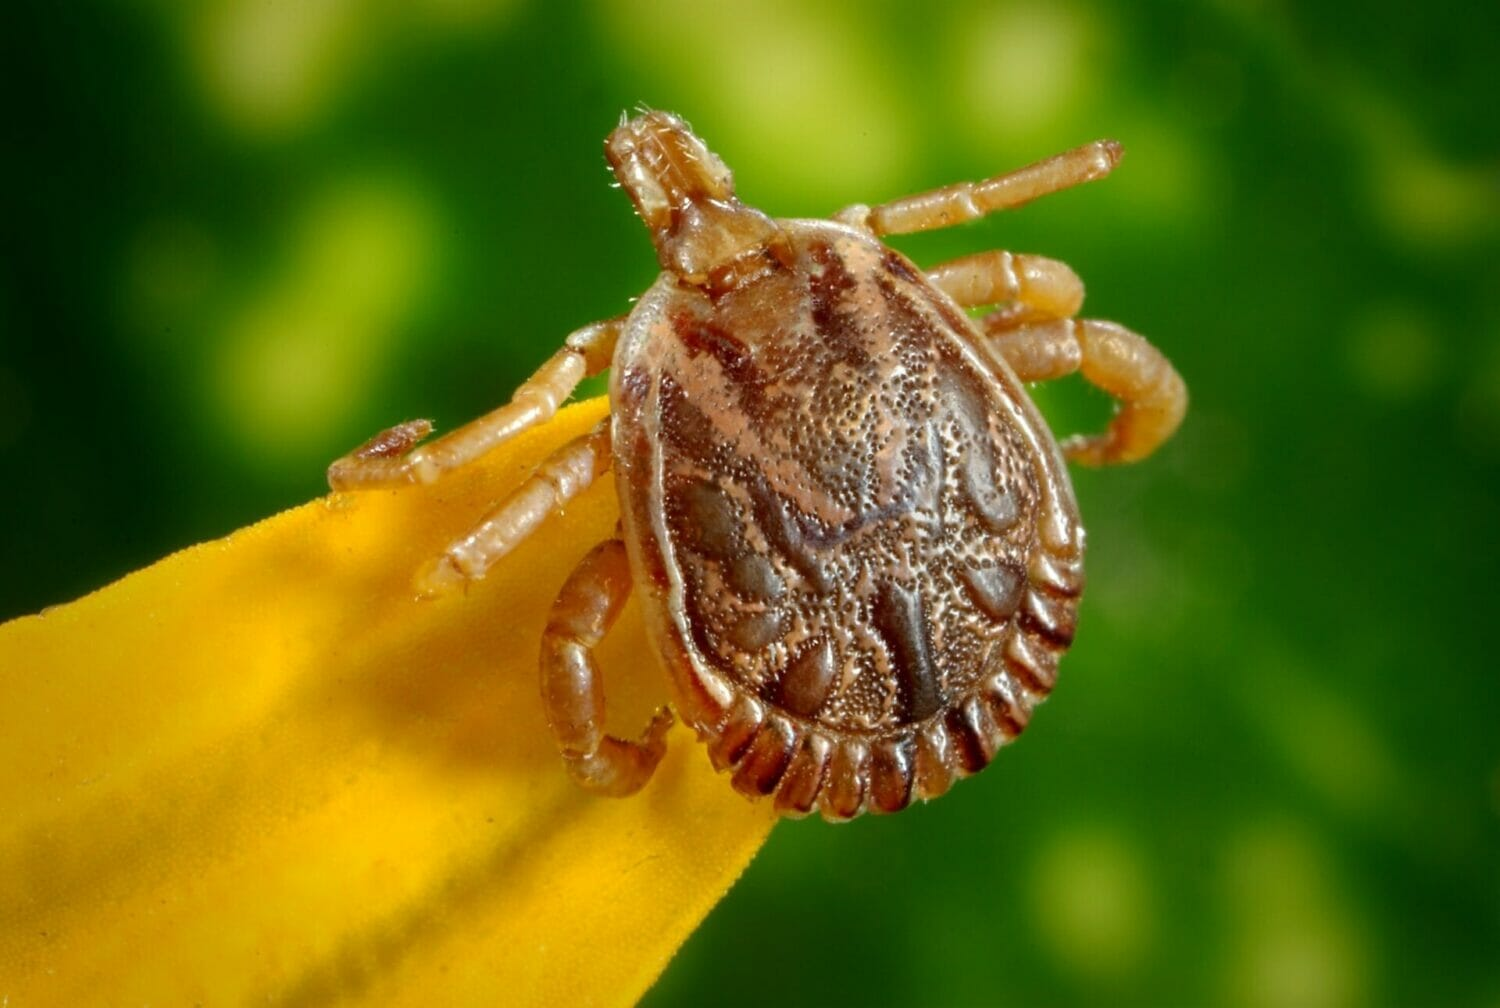 How to Protect Your Kids From Tick Bites: What Works Best?